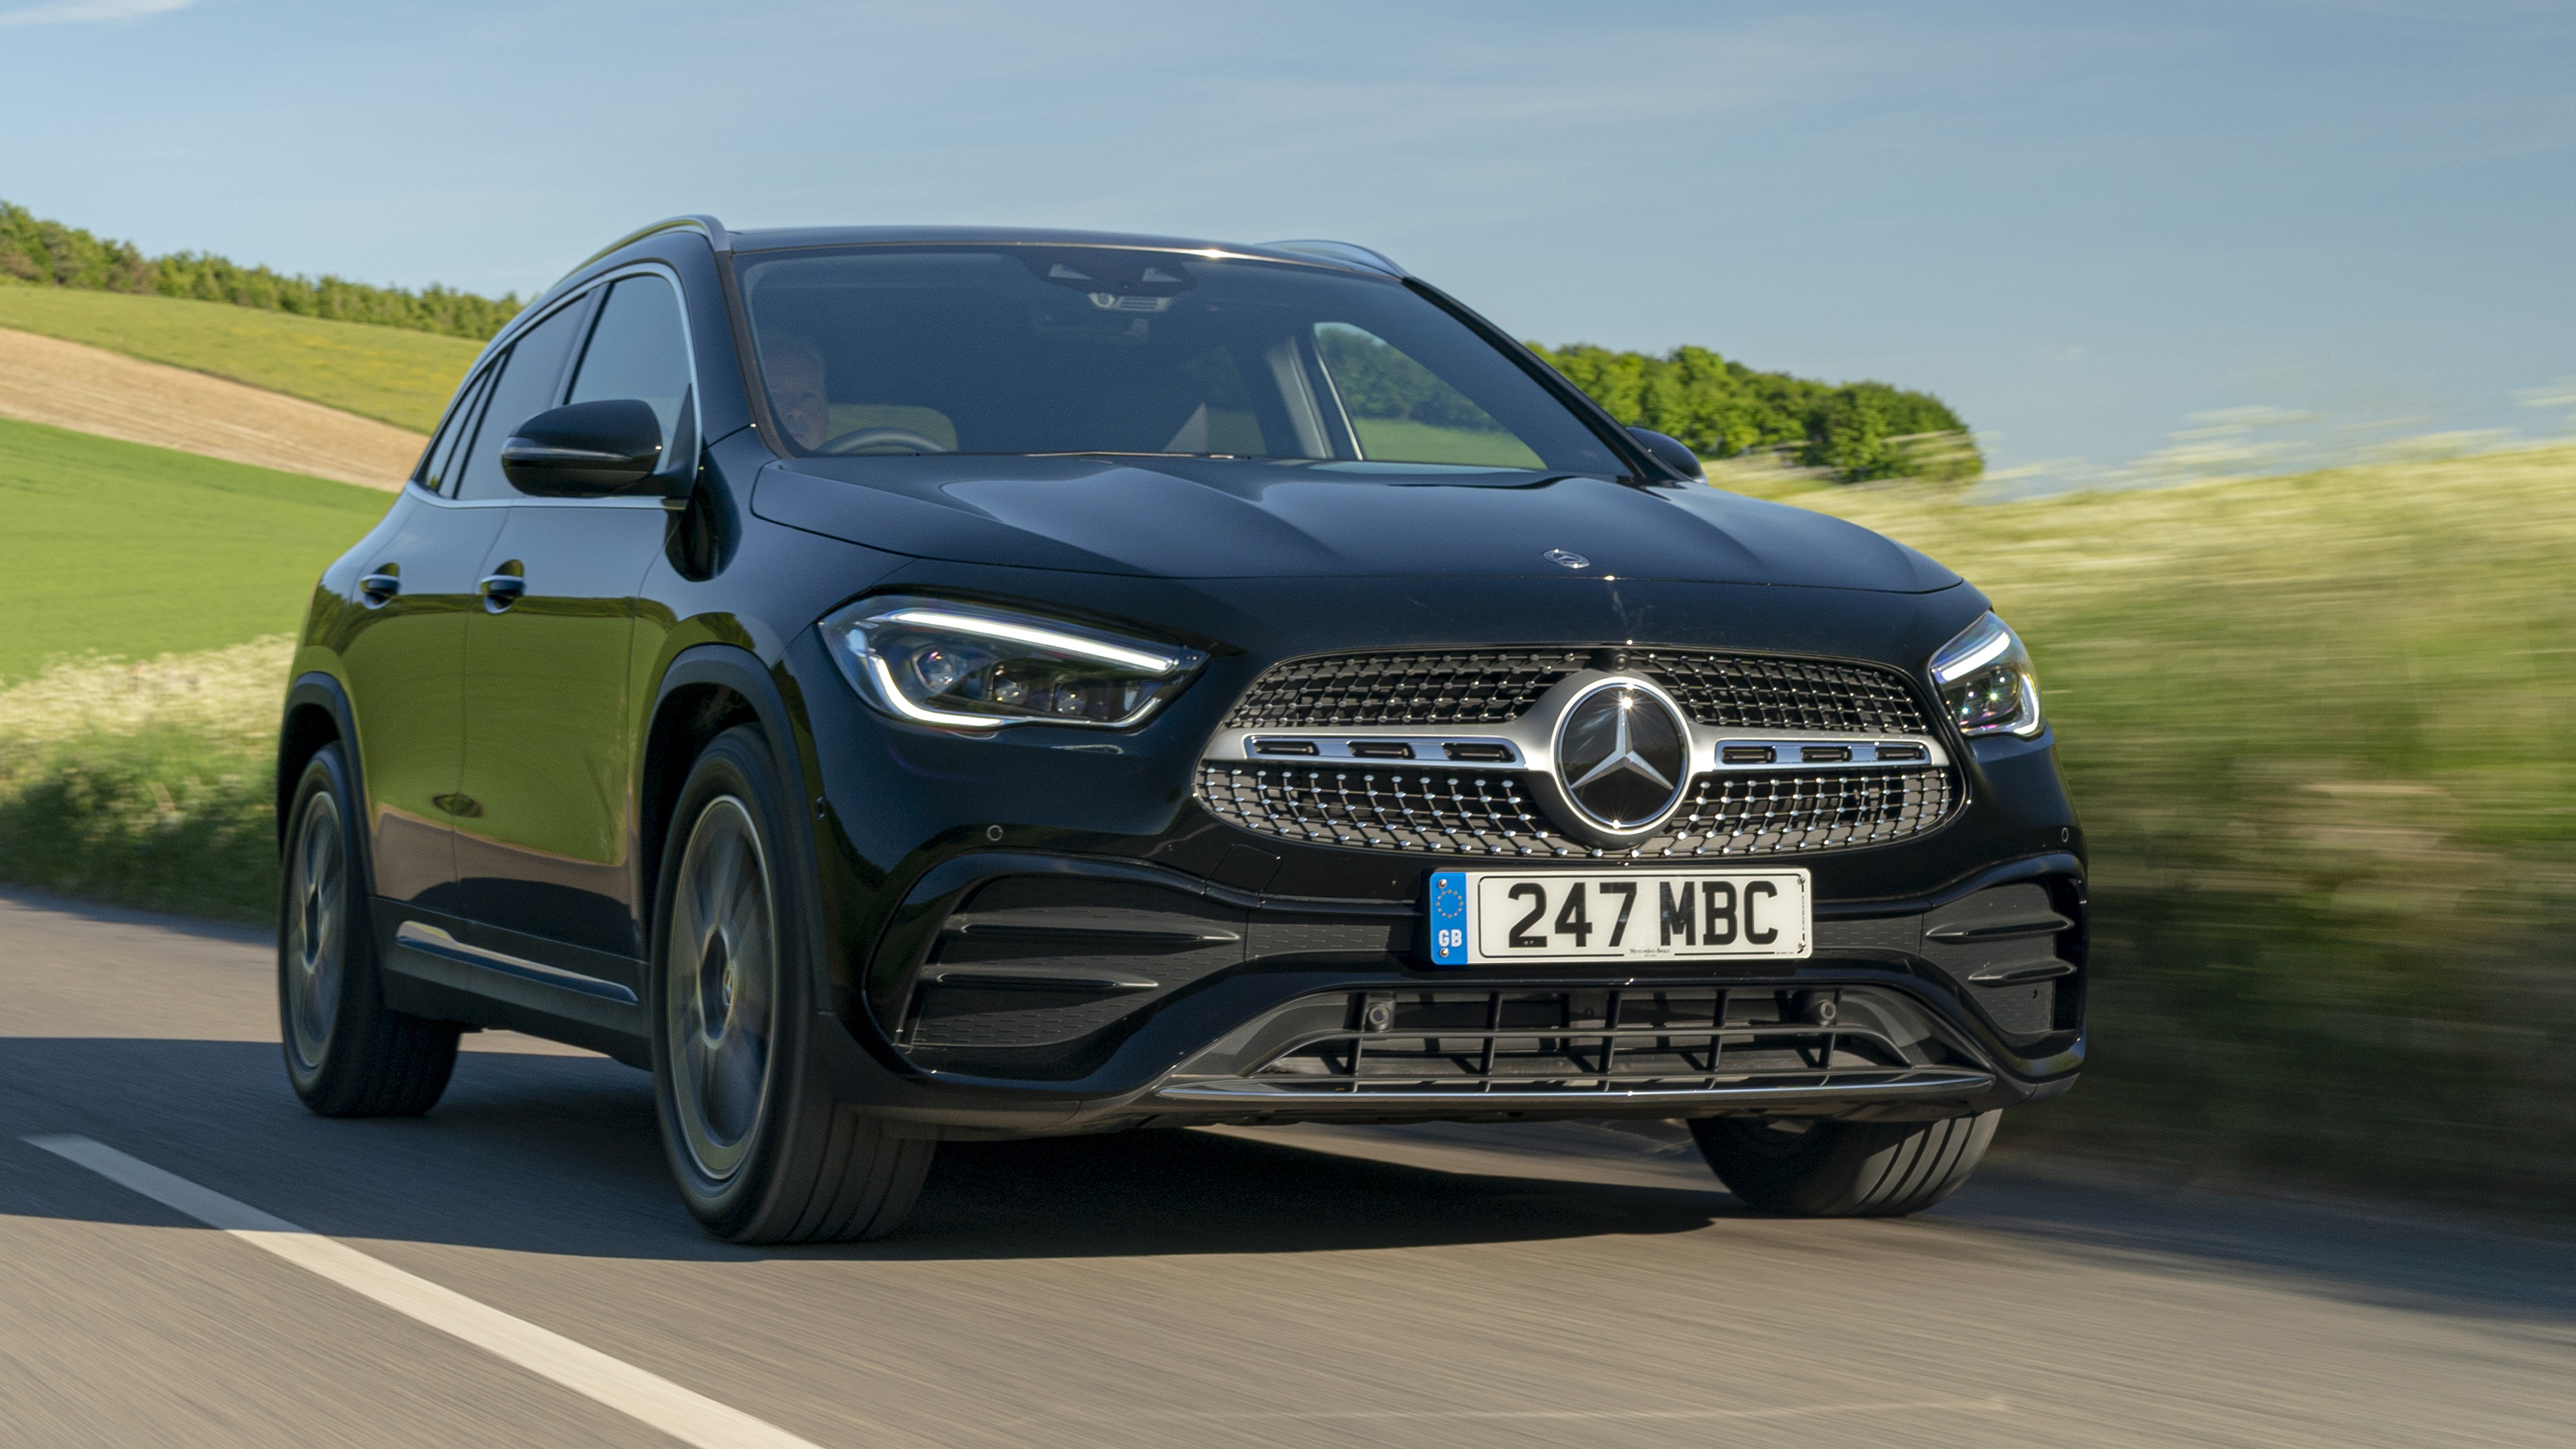 Mercedes Gla Suv 2020 Review Carbuyer